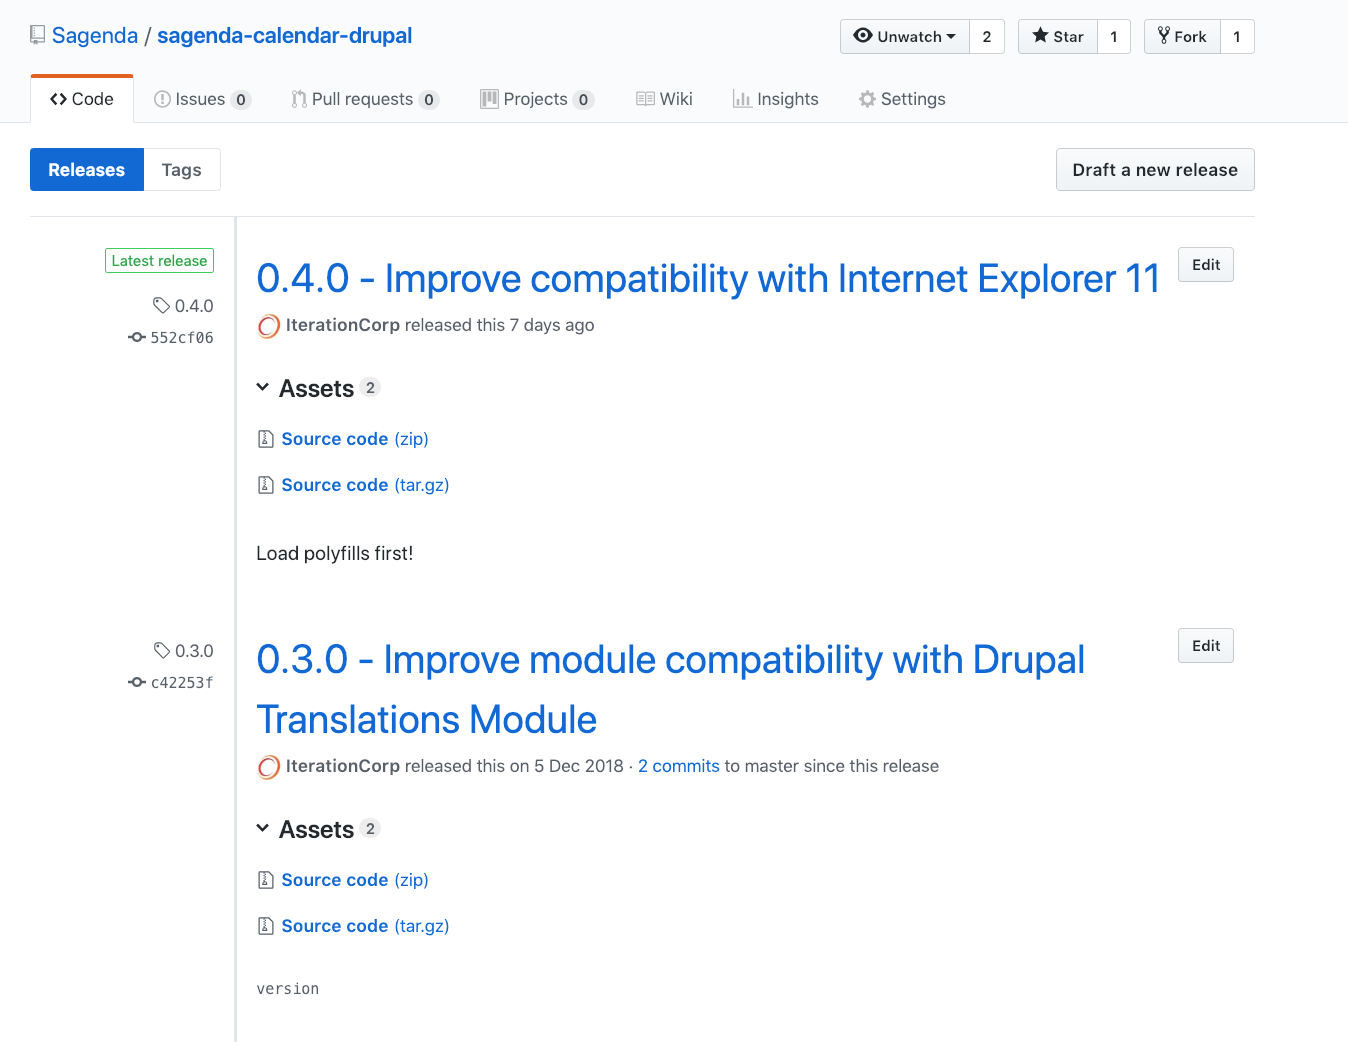 How to Add a Booking Module to My Drupal Website? - Sagenda